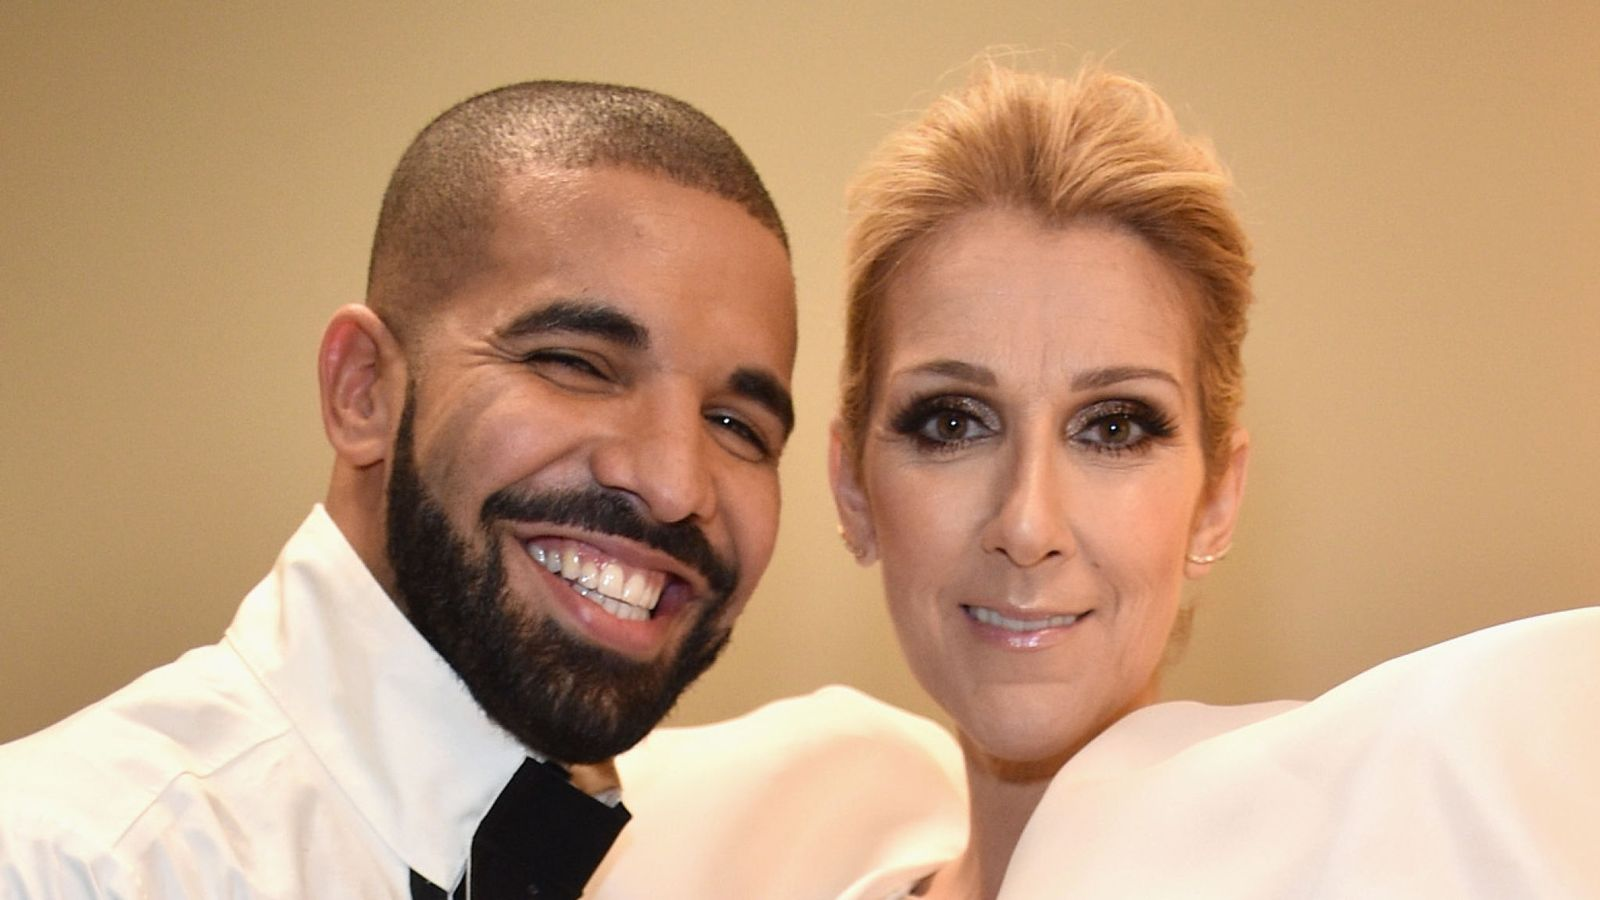 """""""I Love You Very Much, But Please Don't Tattoo My Face On Your Body - Celine Dion Begs Drake 1"""